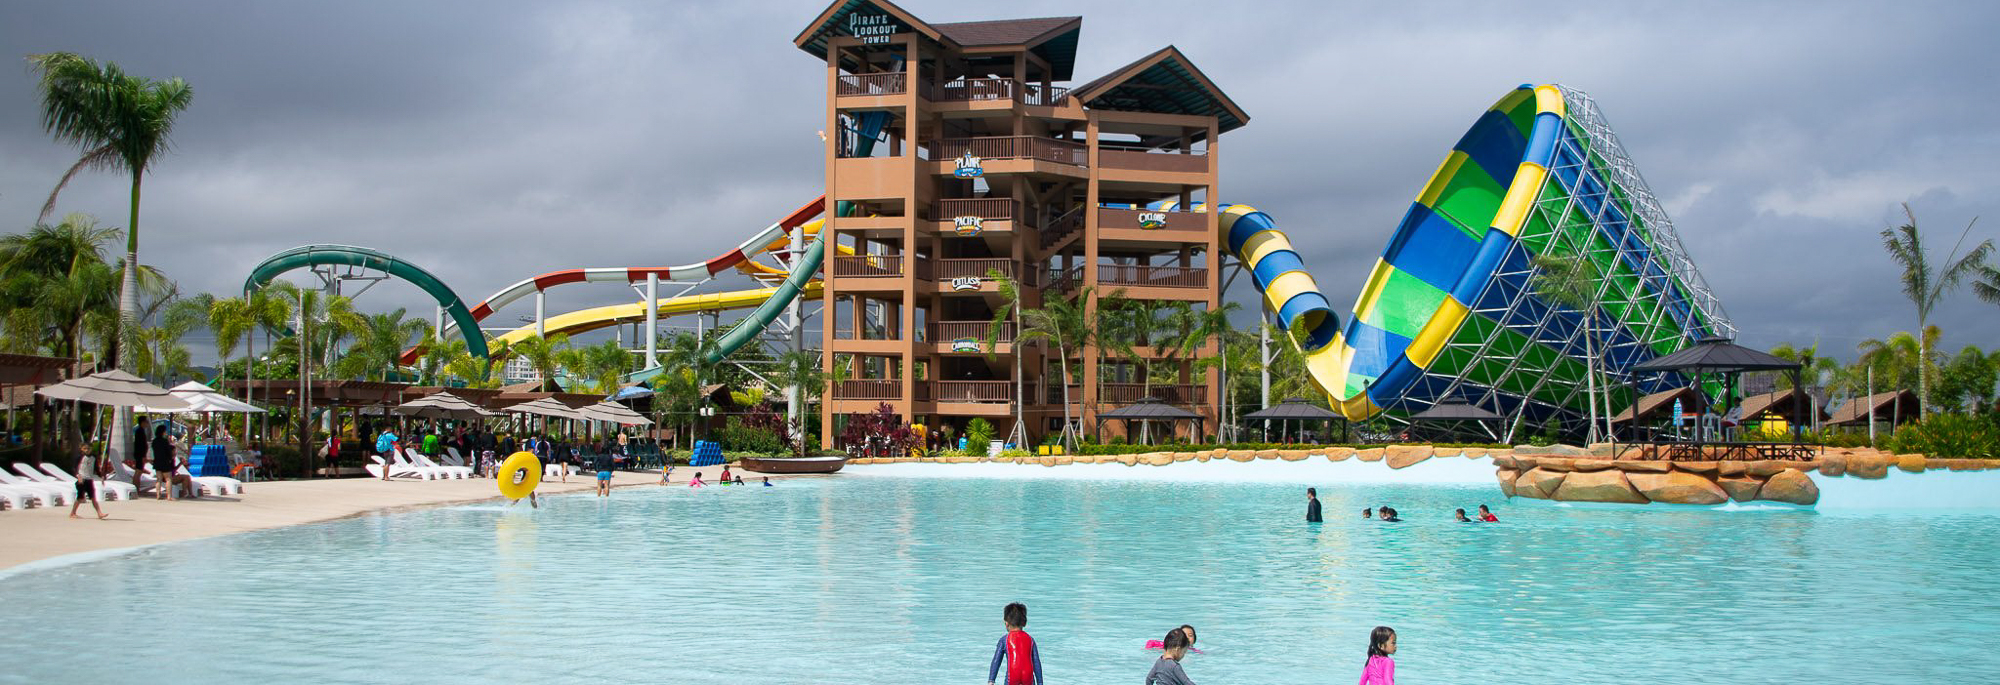 Seven Seas Waterpark Misamis Oriental Full-Day Tour | With Transfers